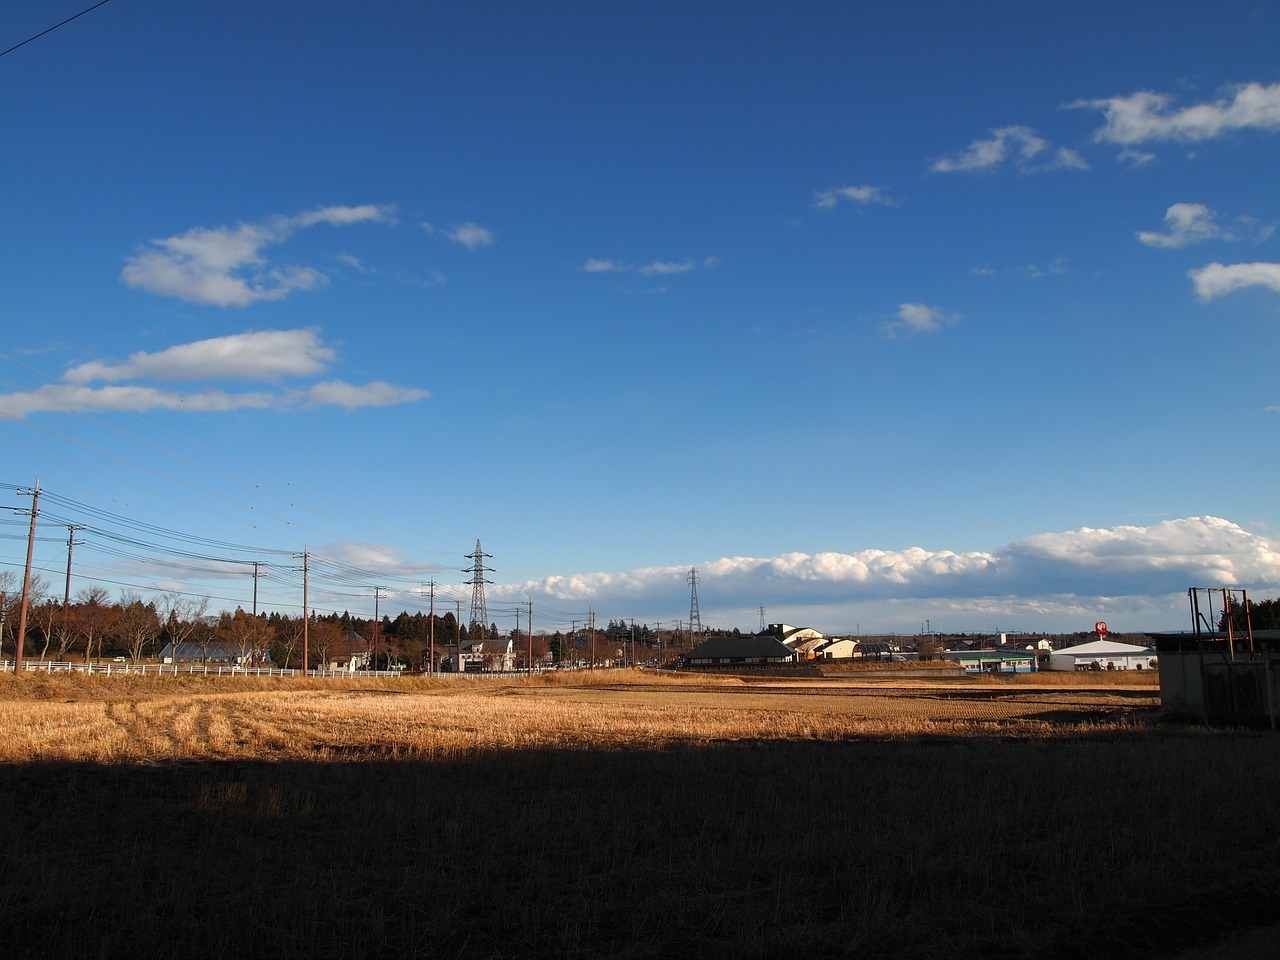 winter yamada's rice fields countryside free photo